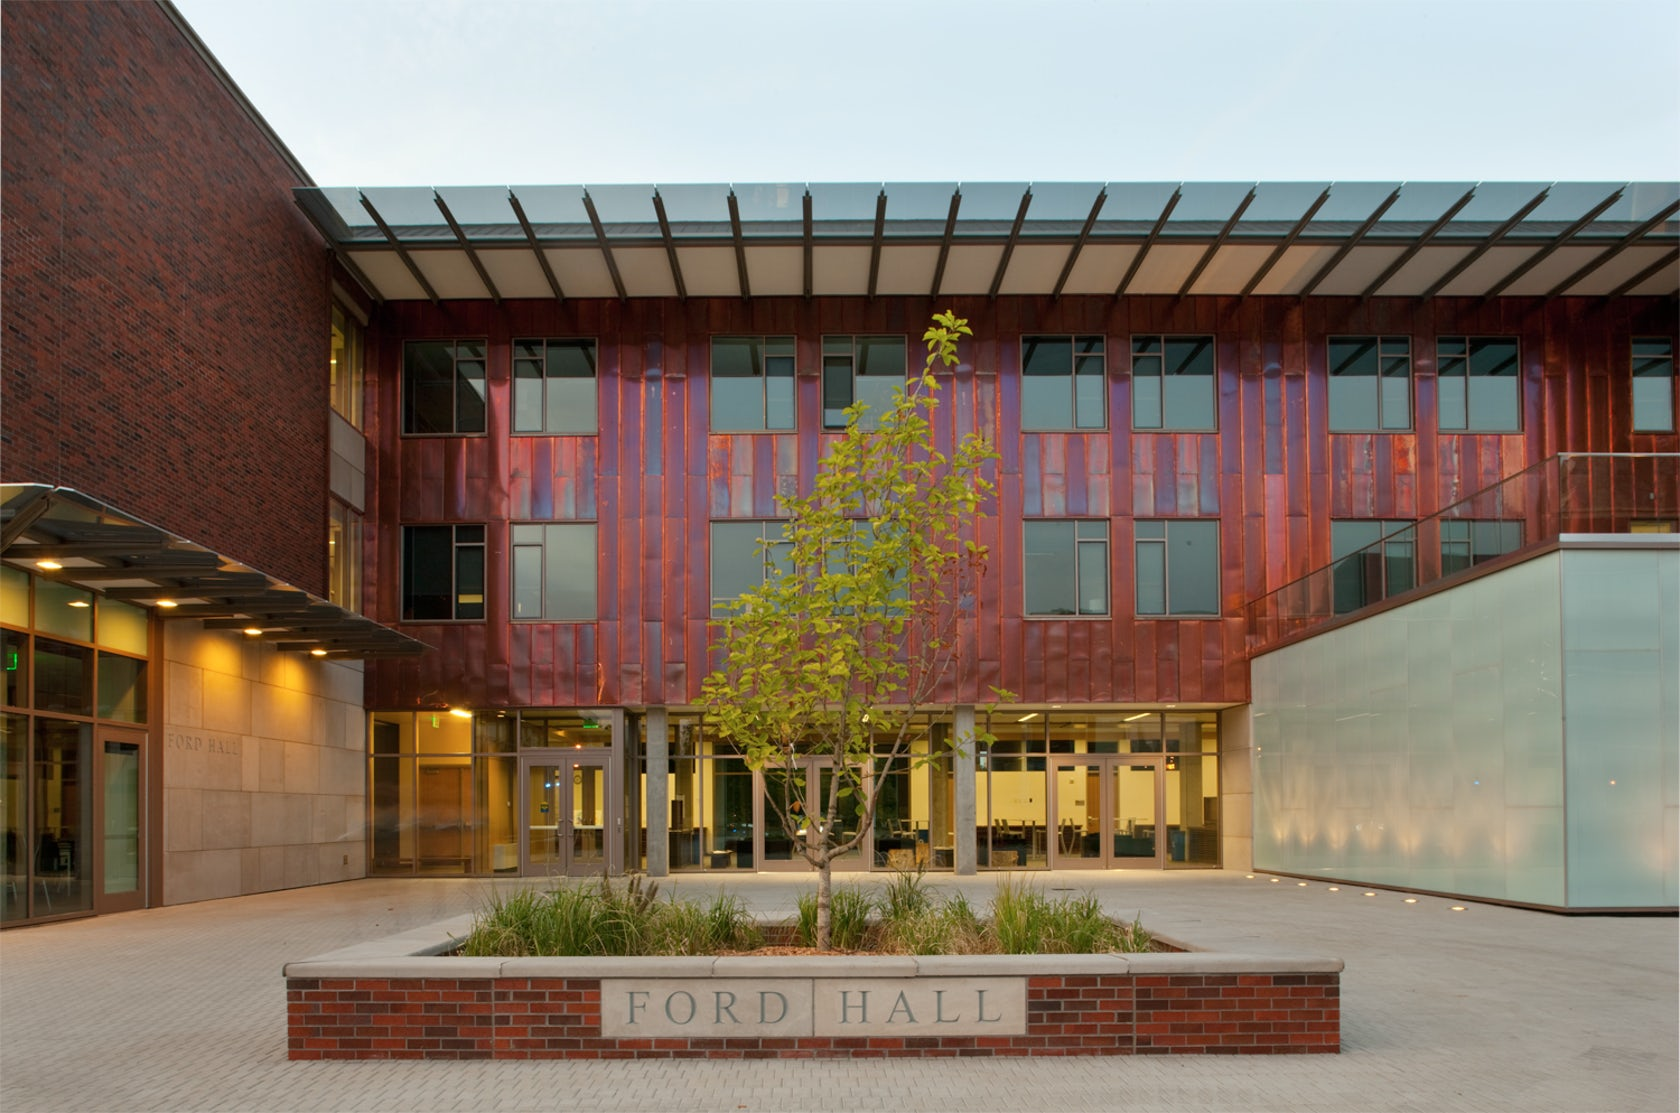 Willamette University - Ford Hall - Architizer